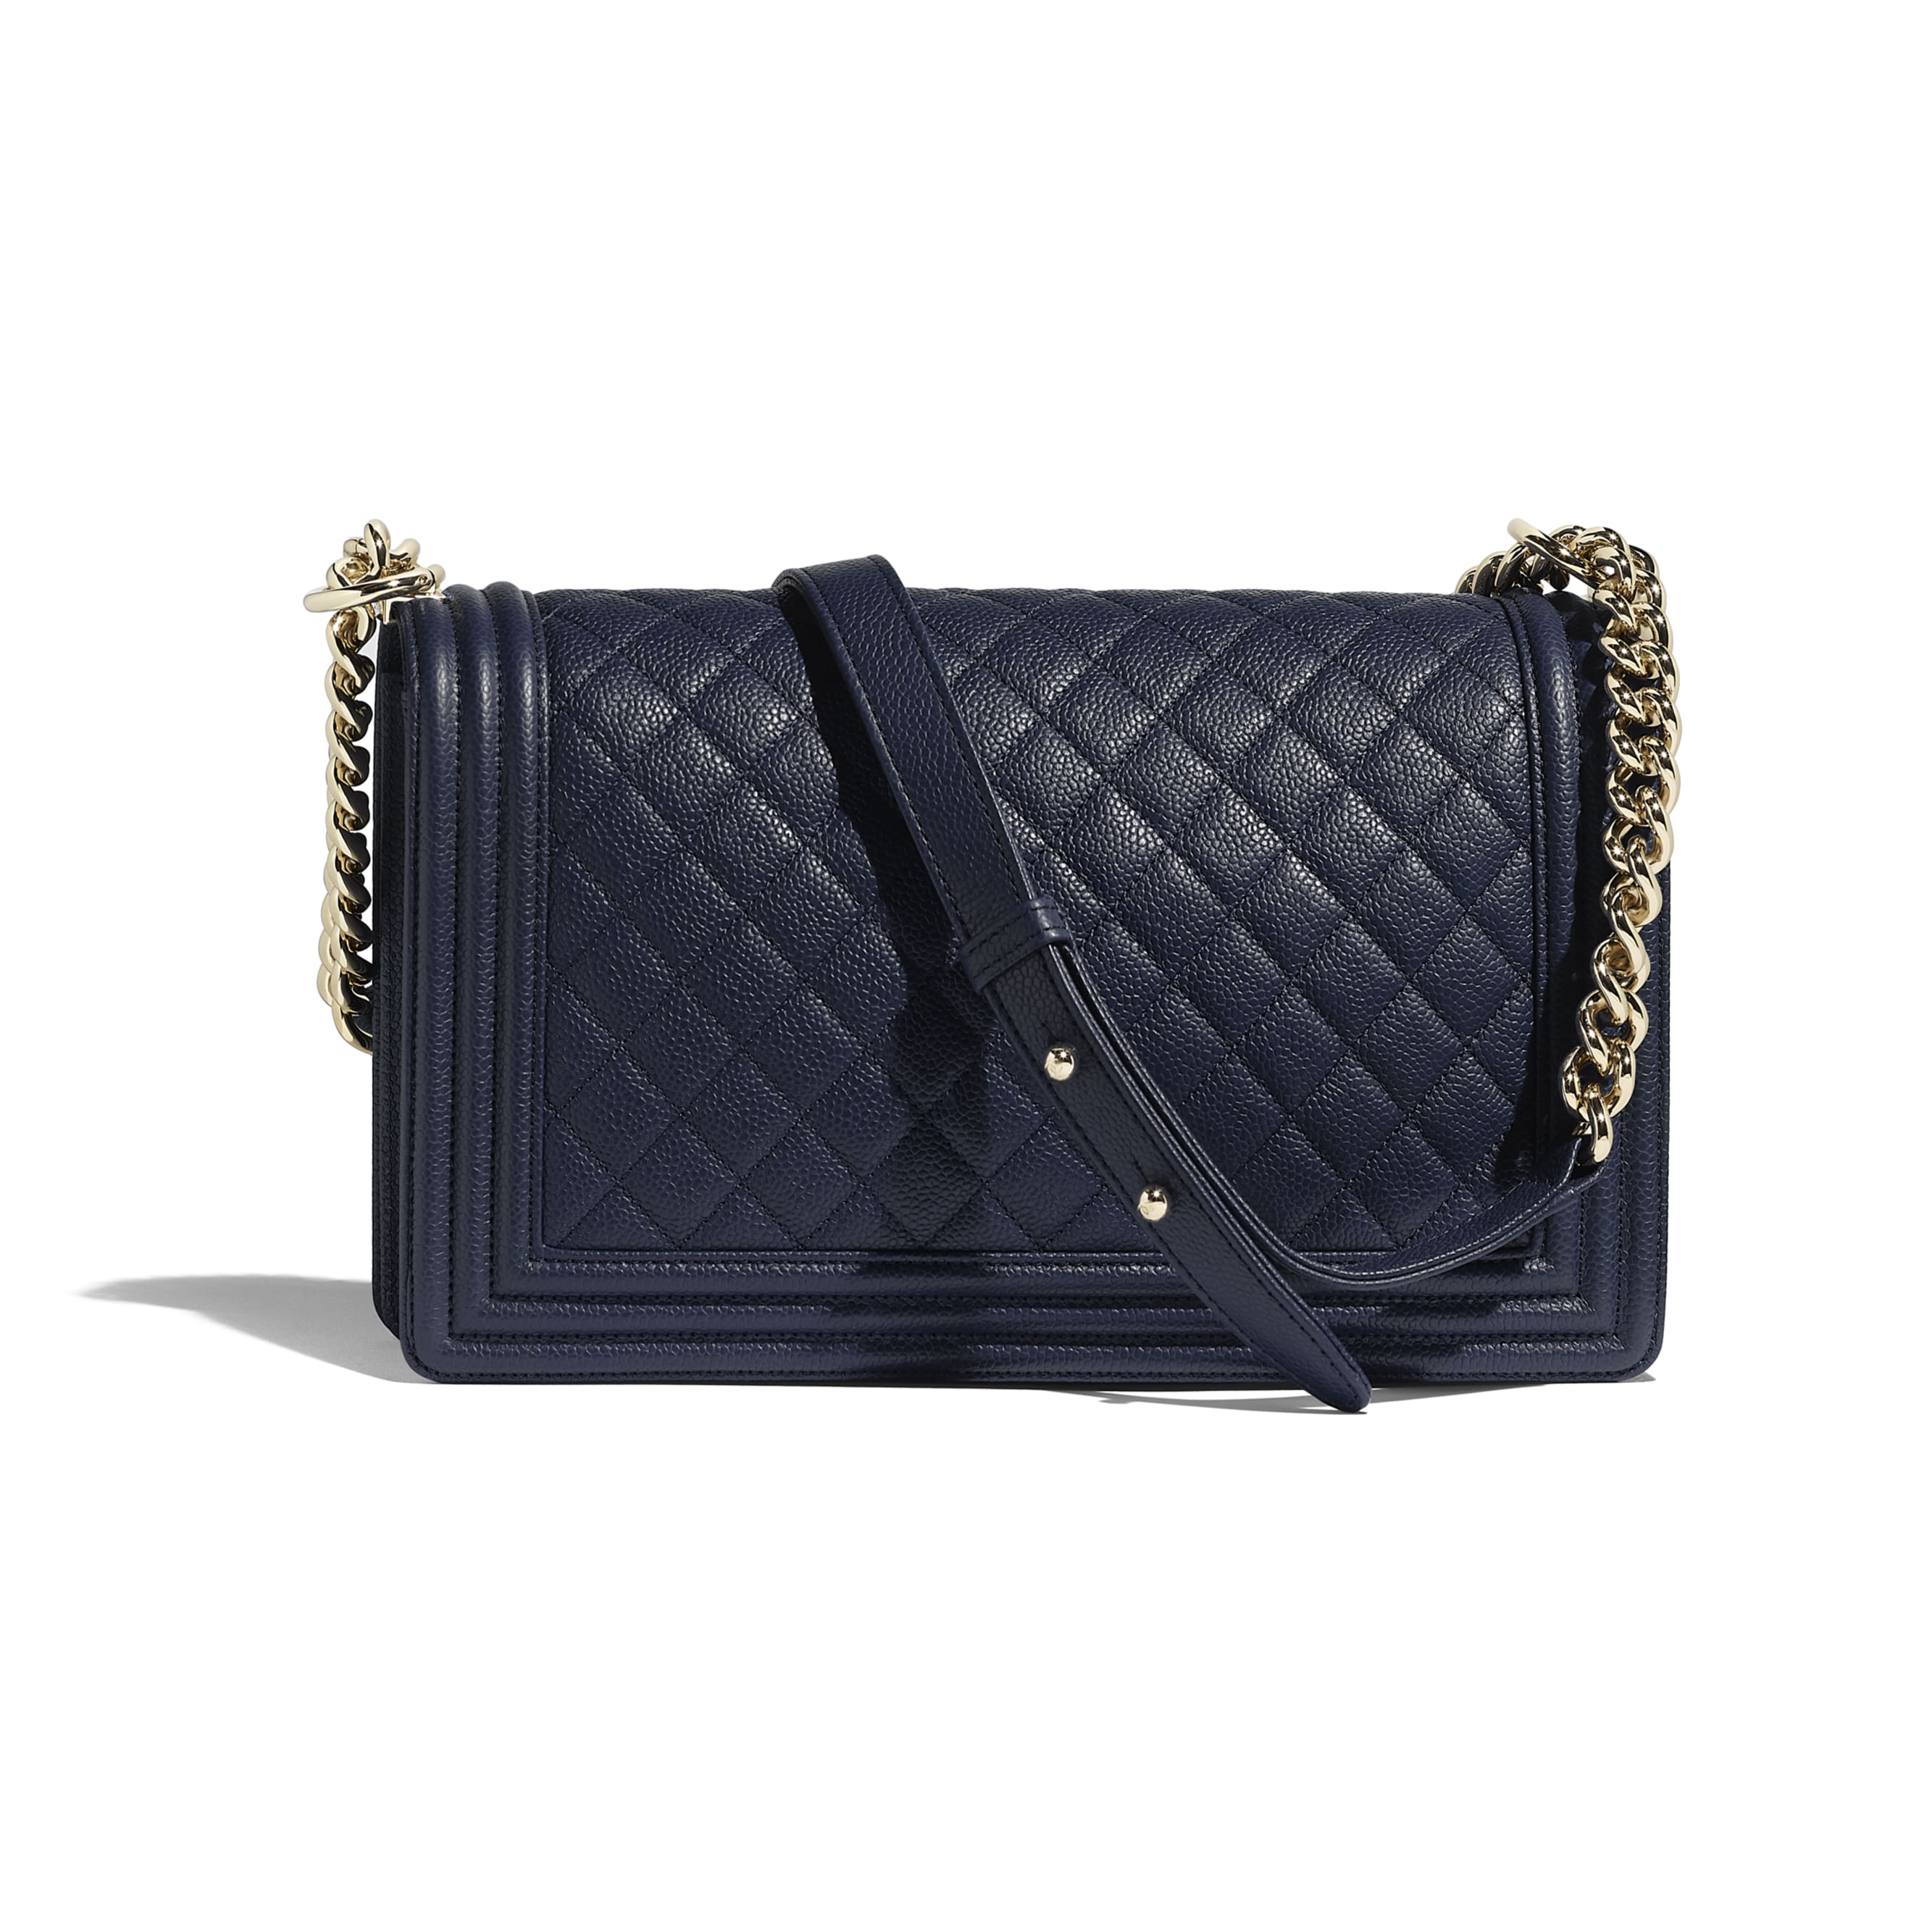 Large BOY CHANEL Handbag - Navy Blue - Grained Calfskin & Gold-Tone Metal - Alternative view - see standard sized version